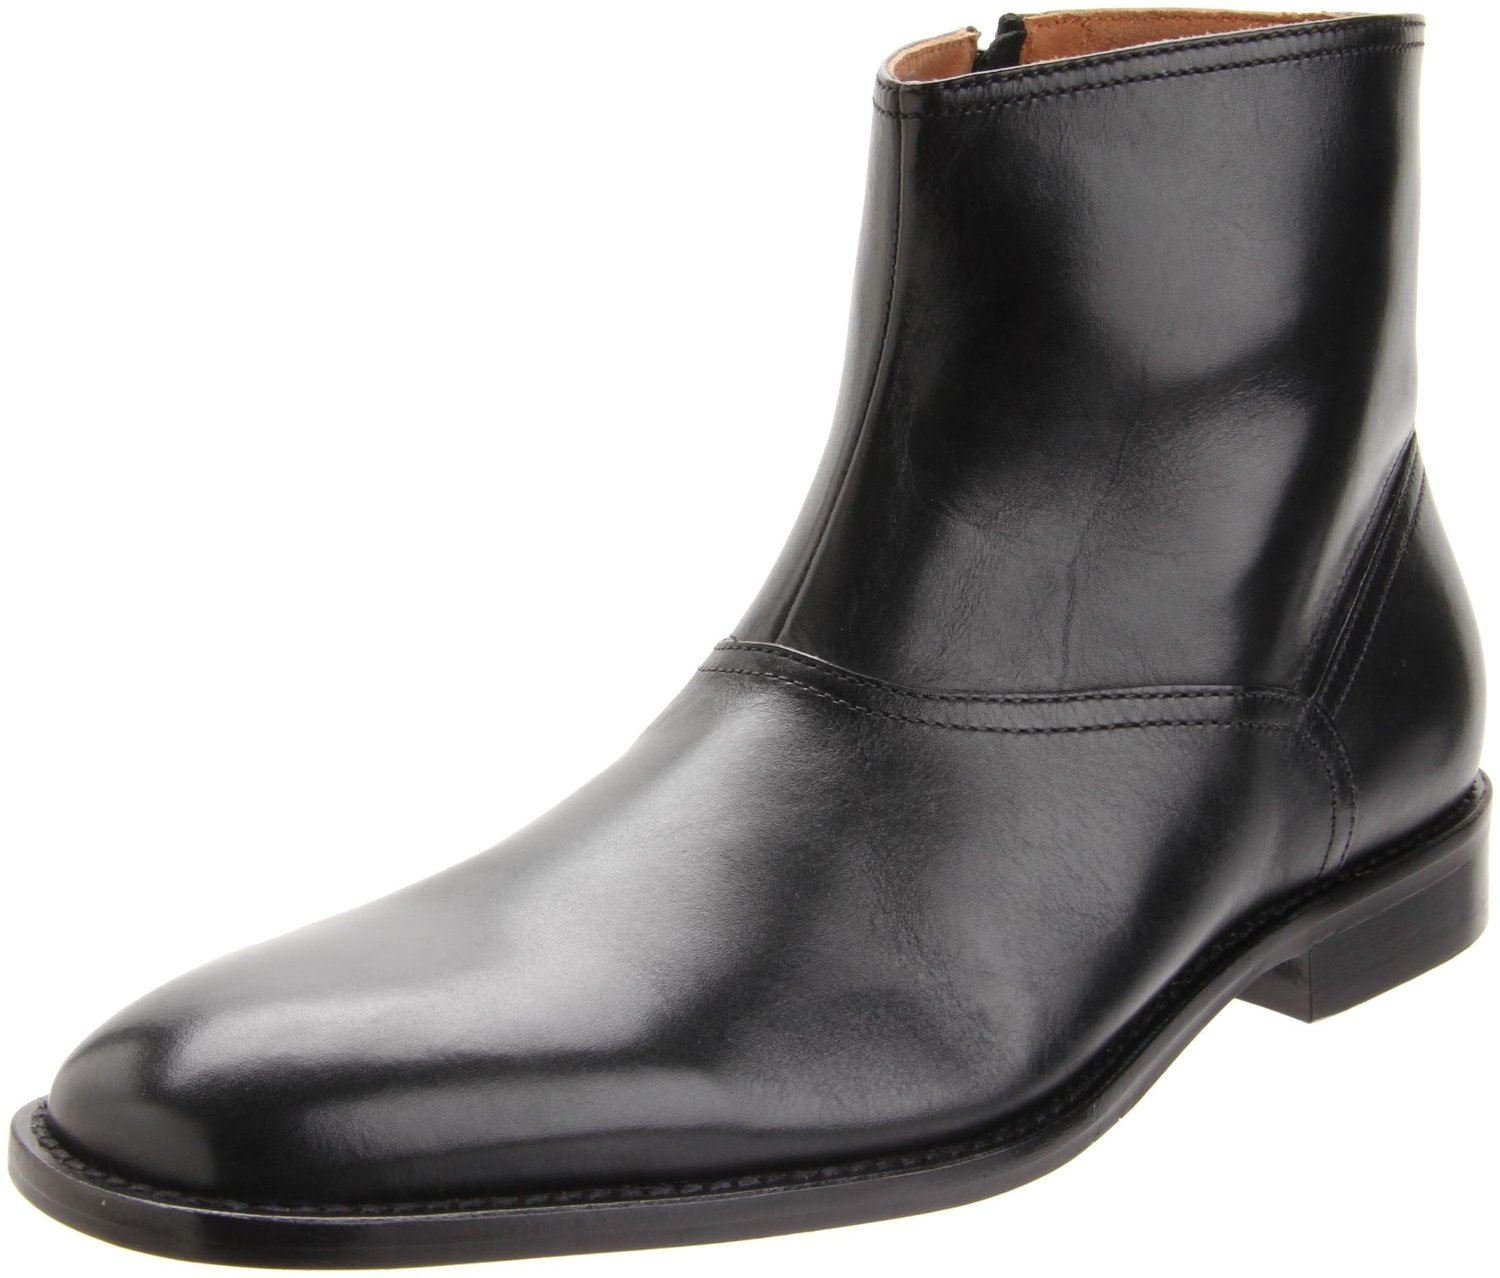 Johnston Murphy Knowland Boot 20 6565 Men Black Leather Retail $195